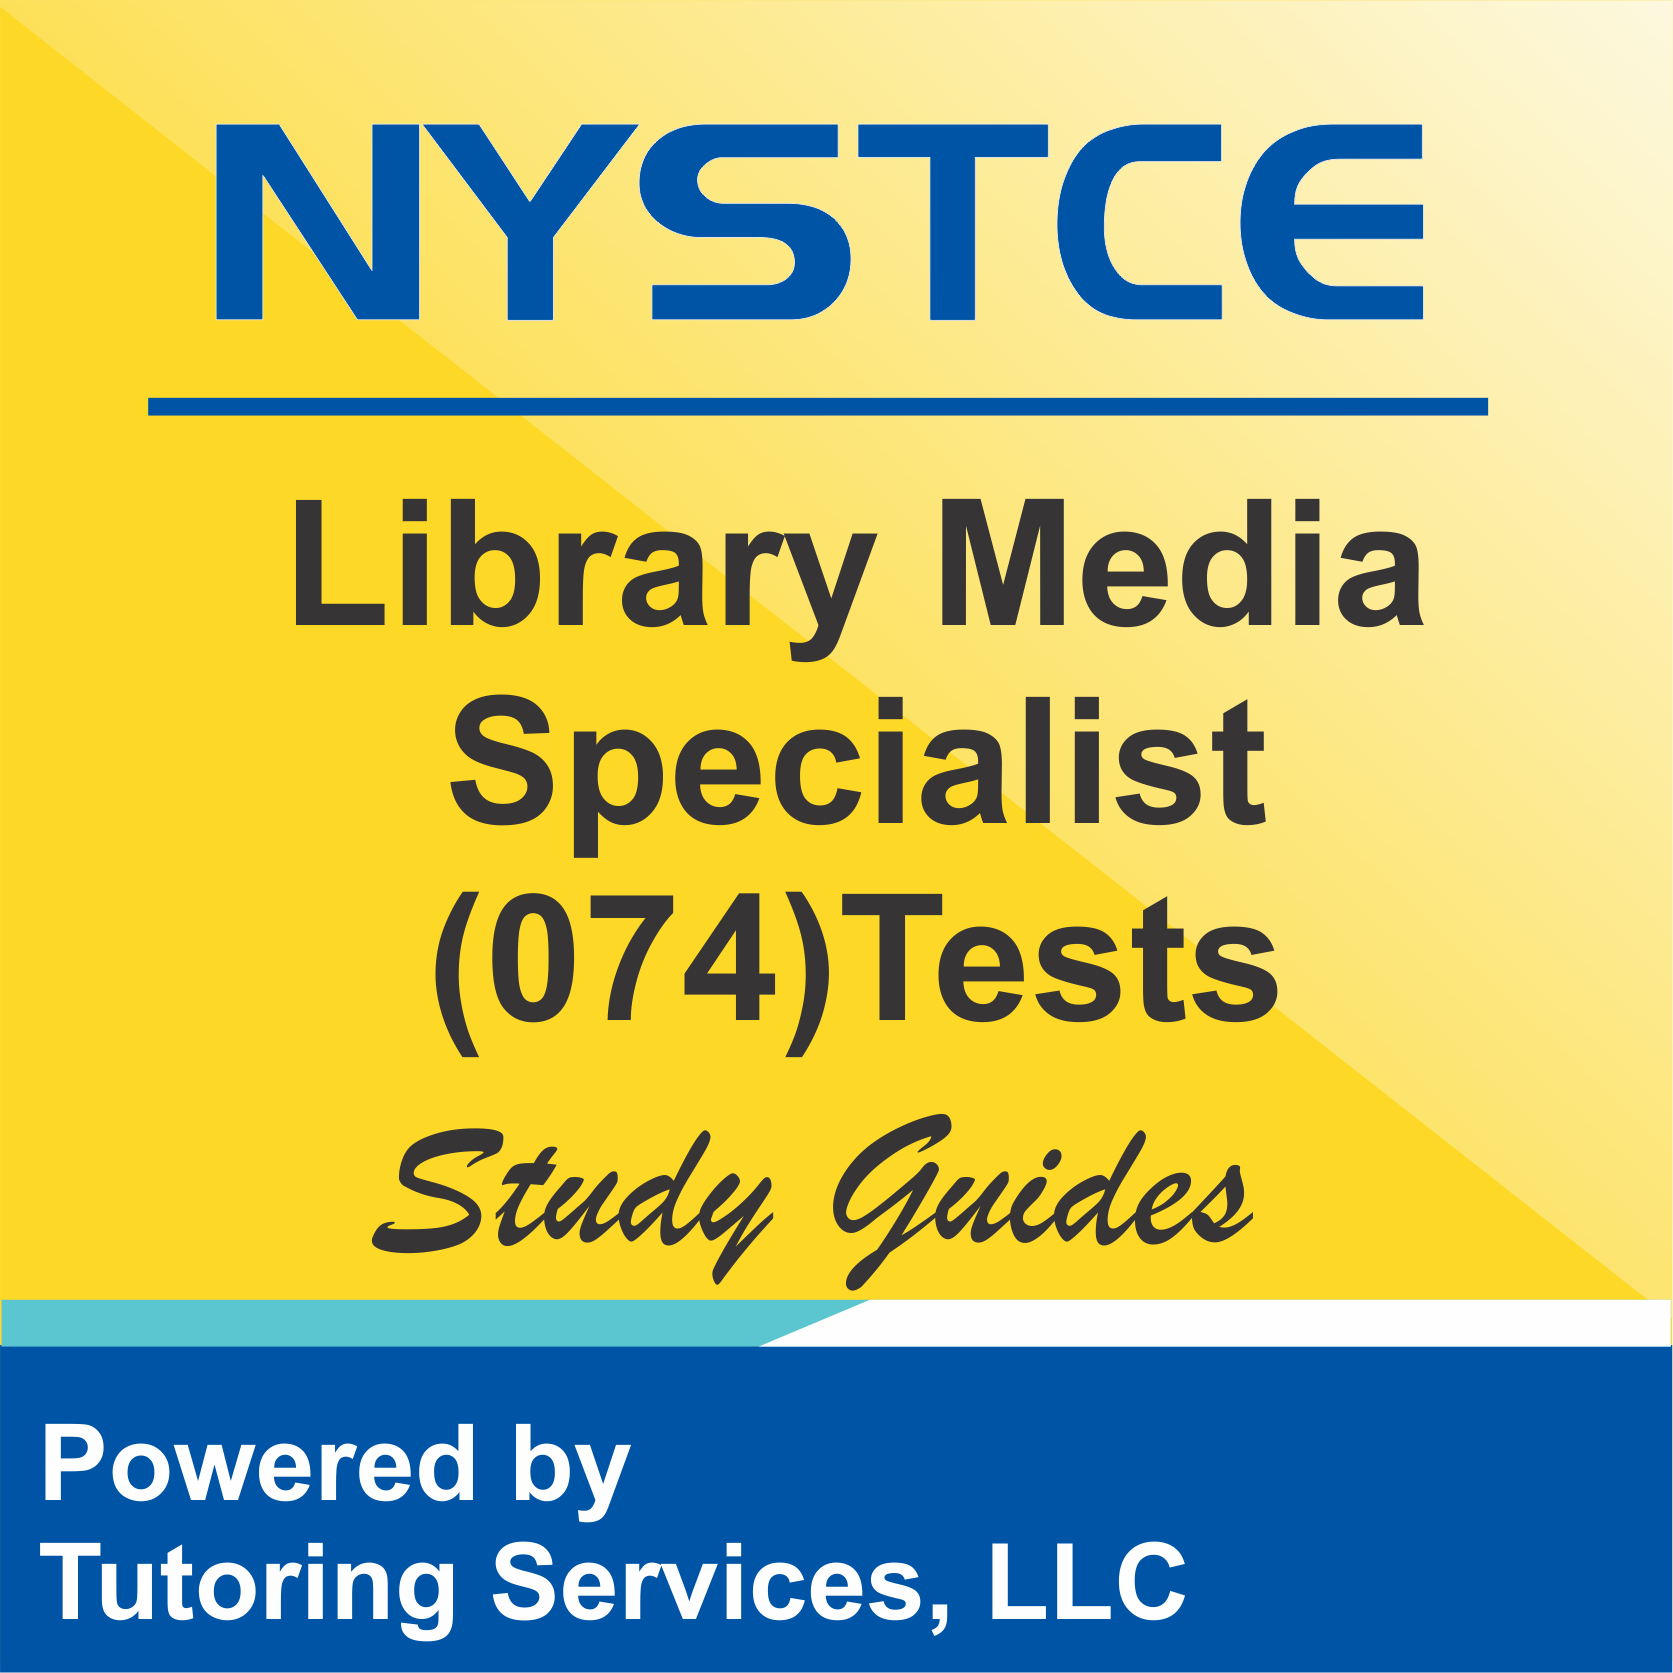 NYSTCE New York State Test Information for Library Media Specialist 074